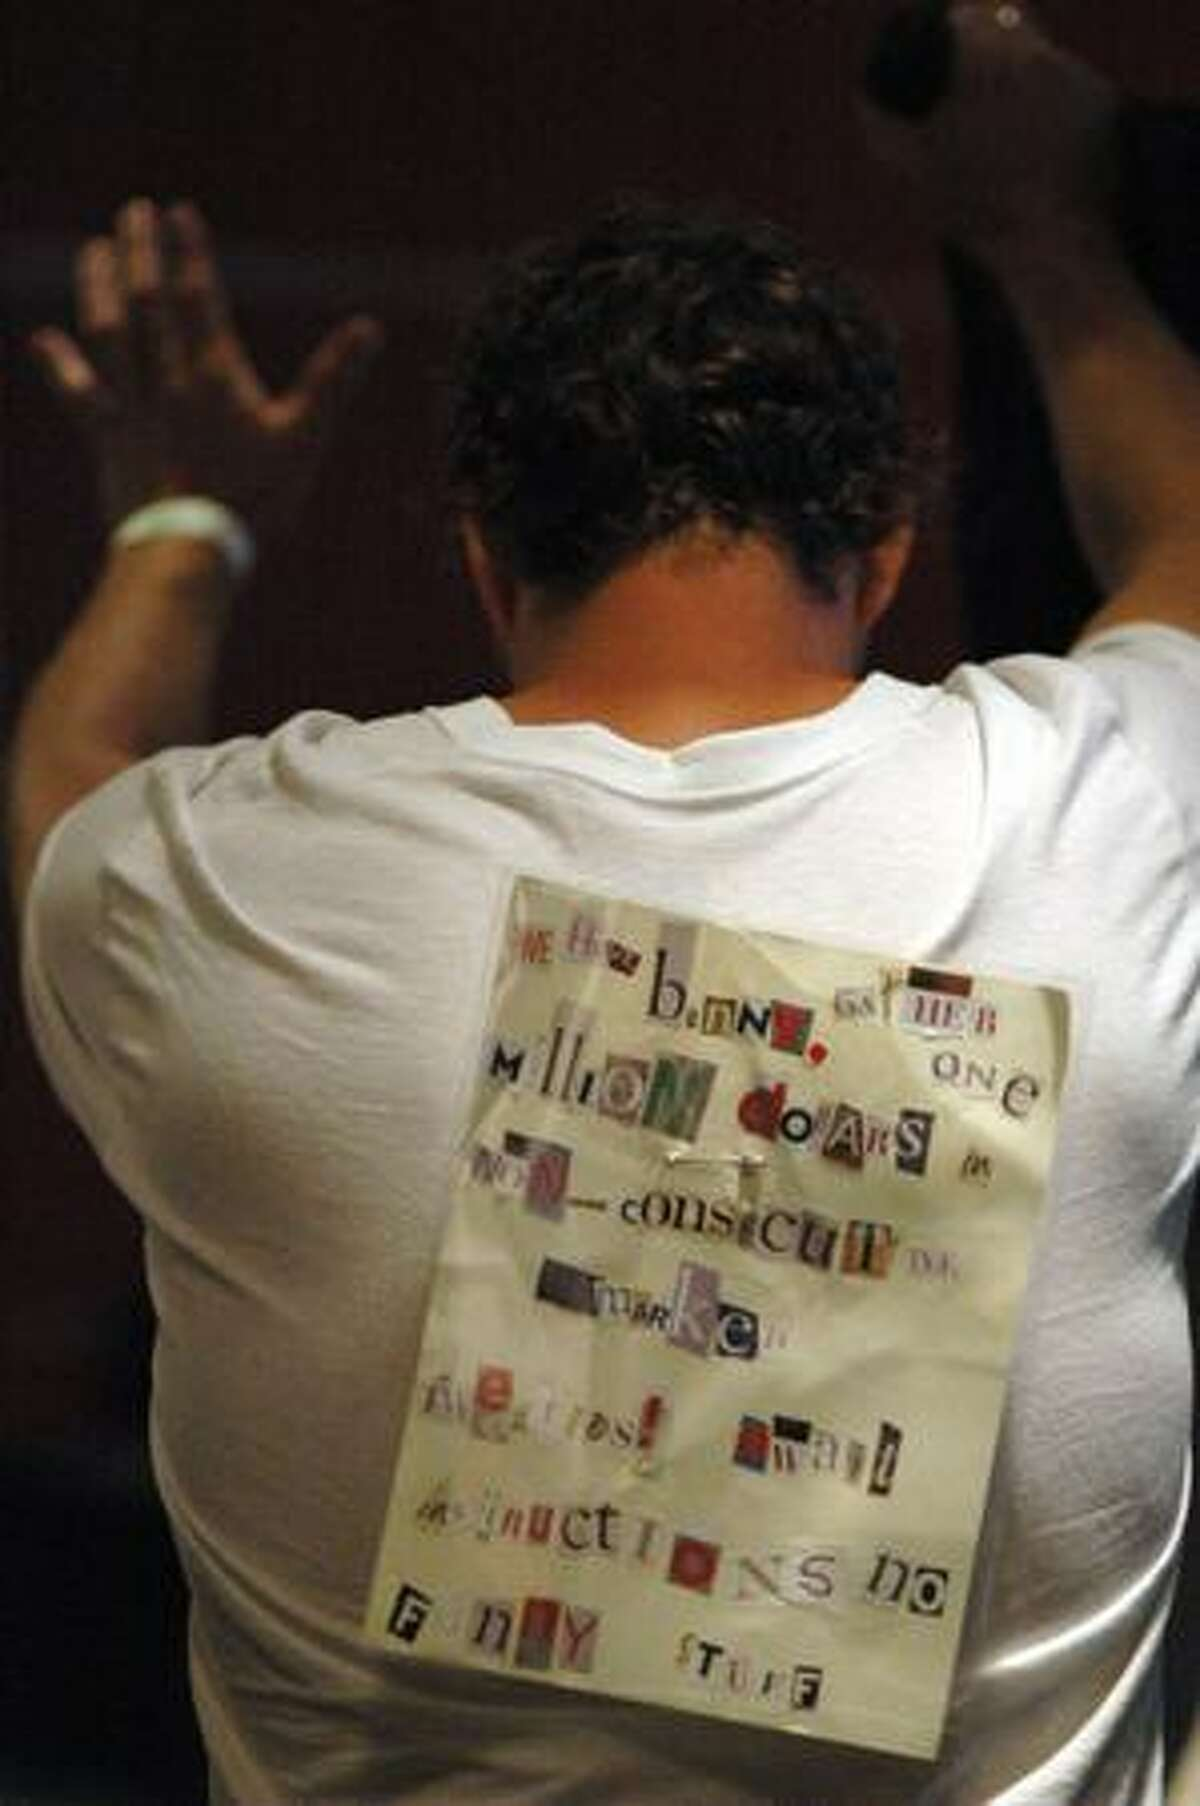 One Lebowski Fest attendee sported this T-shirt decorated with the ransom note from the movie.